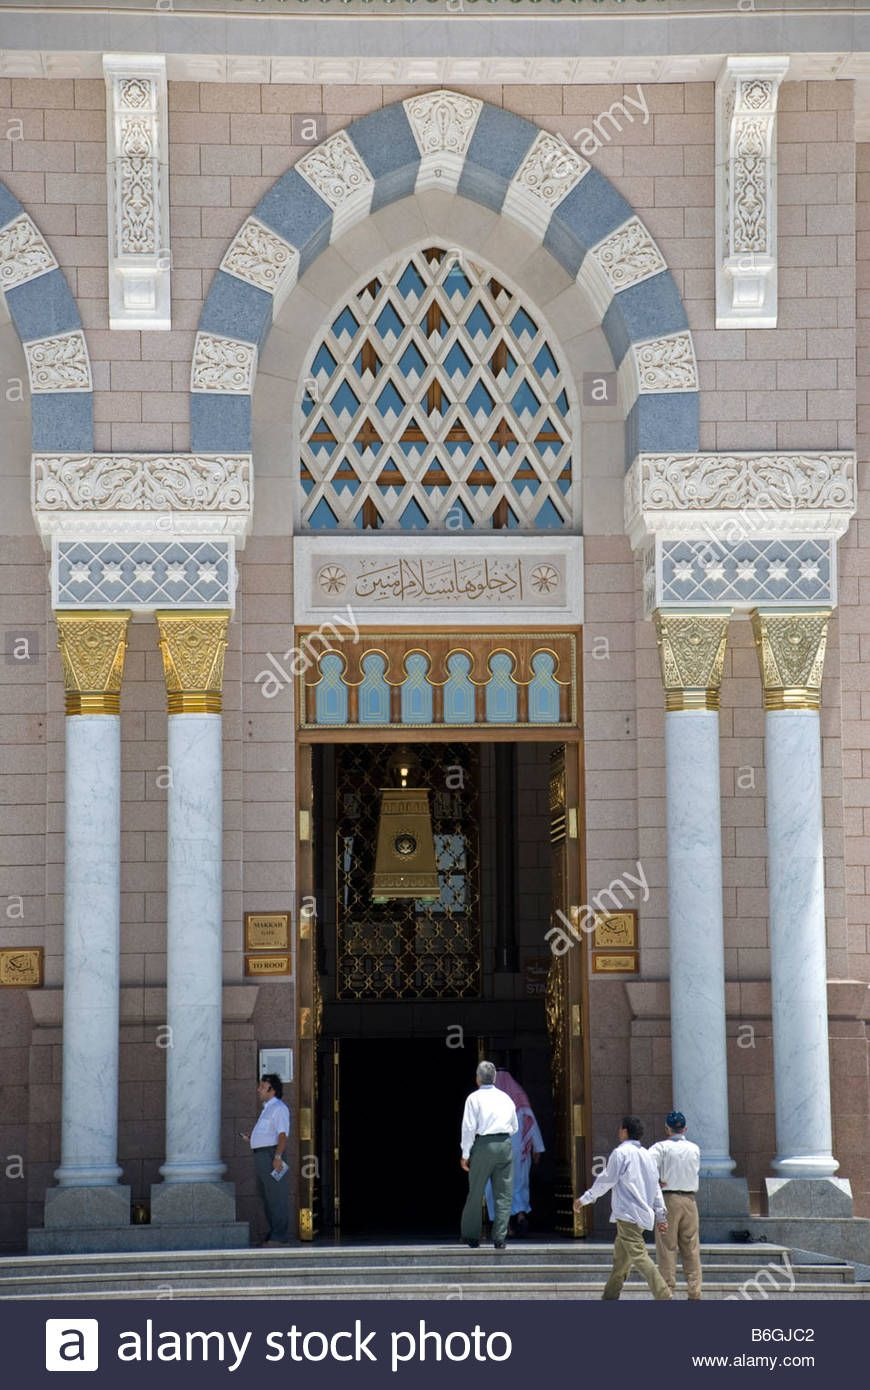 Download This Stock Image Doors Of The Makkah Gate Mosque Jam Digital Masjid Type Mini Prophet Al Nabawi Madinah Saudi Arabia B6gjc2 From Alamys Library